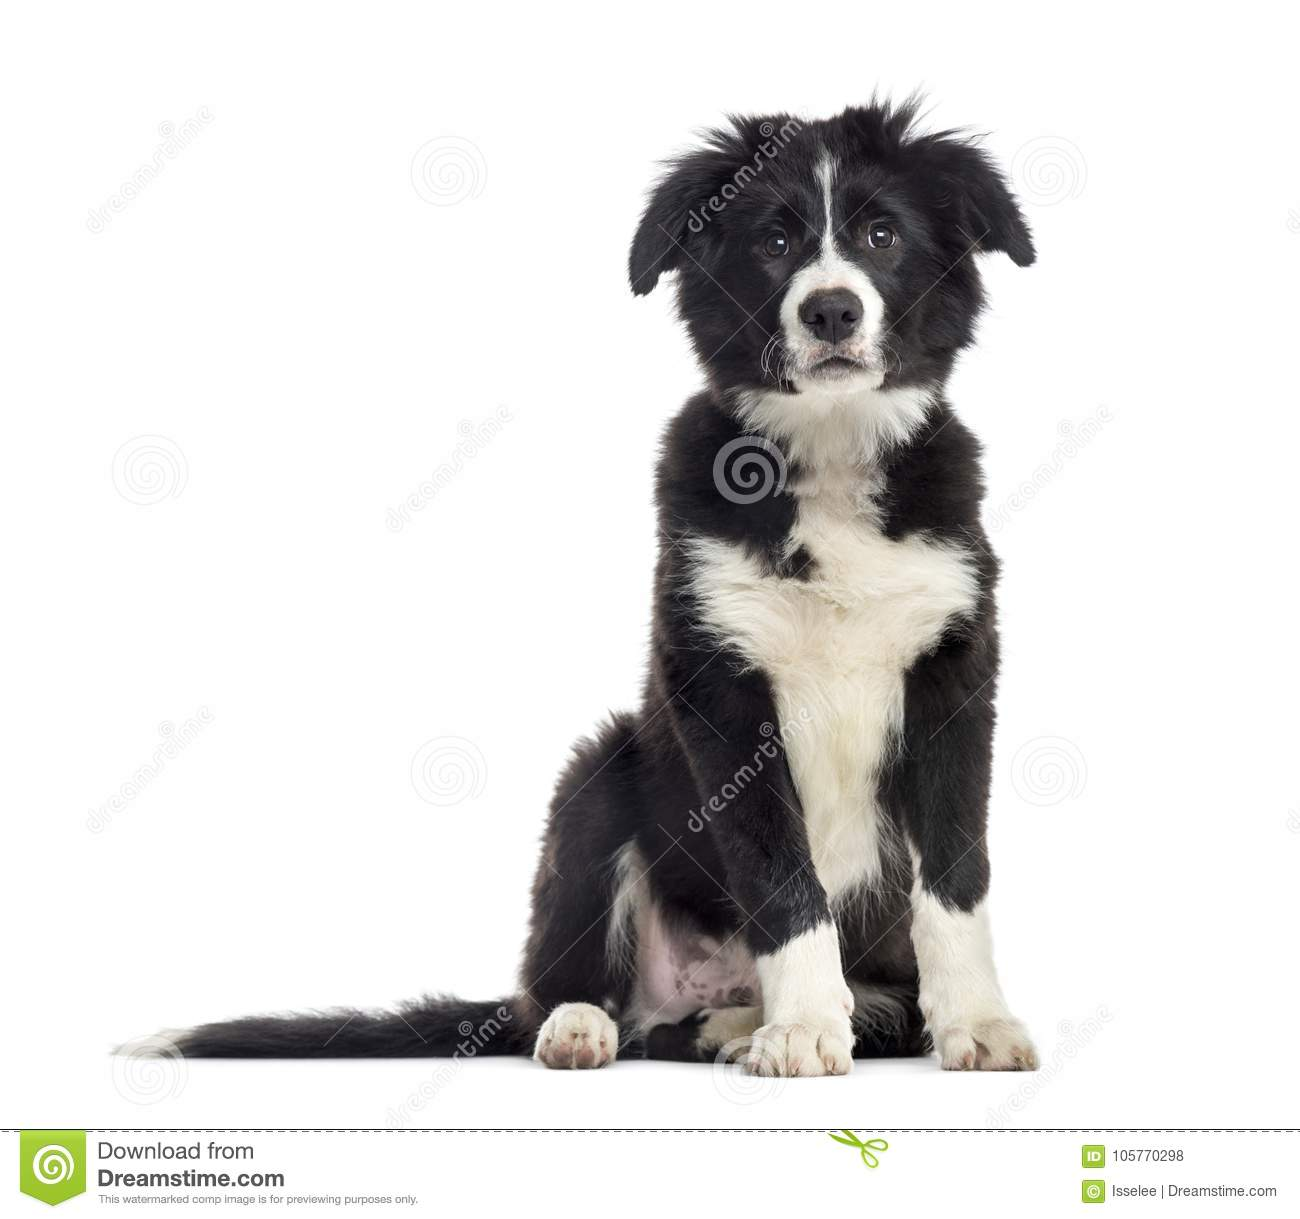 puppy border collie dog, 3 months old, sitting, isolated on whit